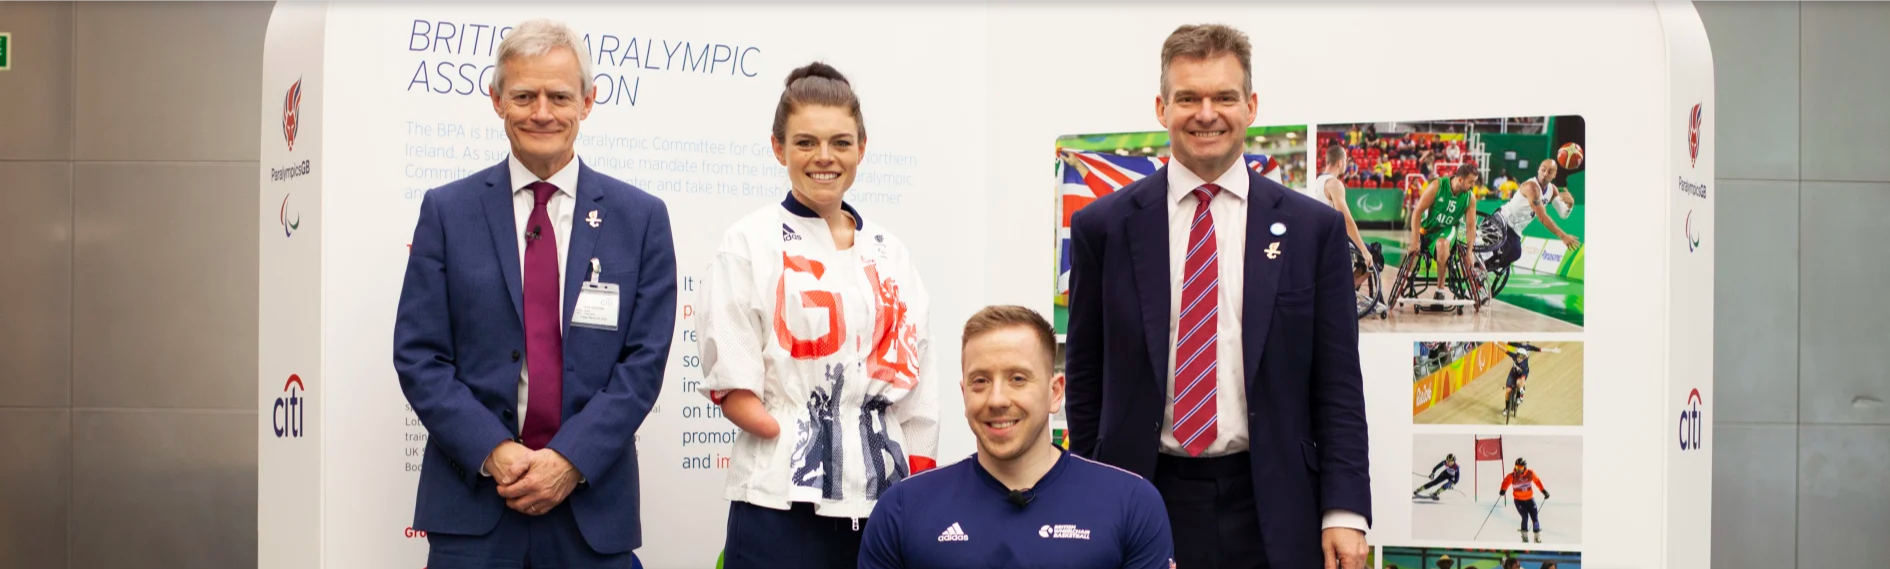 The British Paralympic Association has signed a new partnership with global bank Citi ©BPA